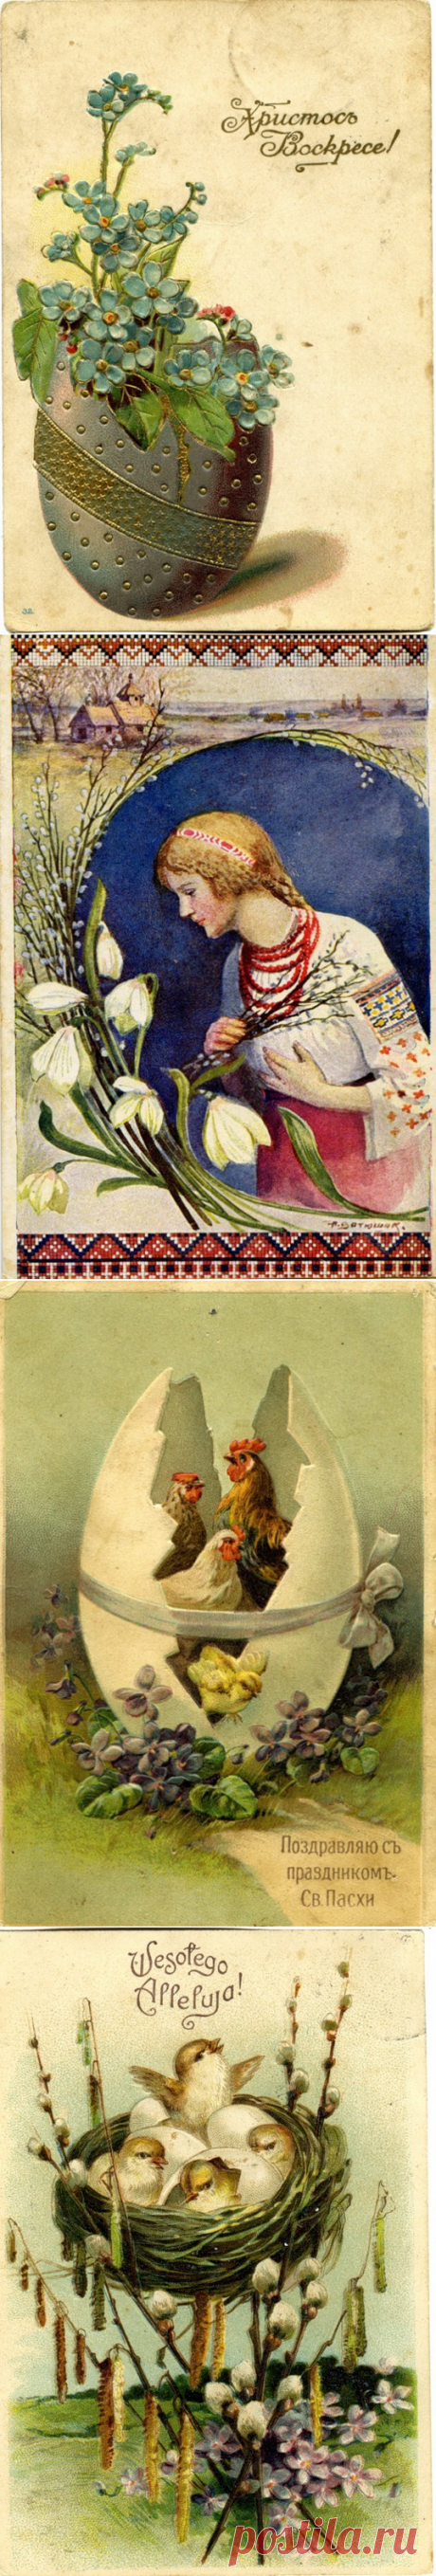 Easter cards of pre-revolutionary Russia